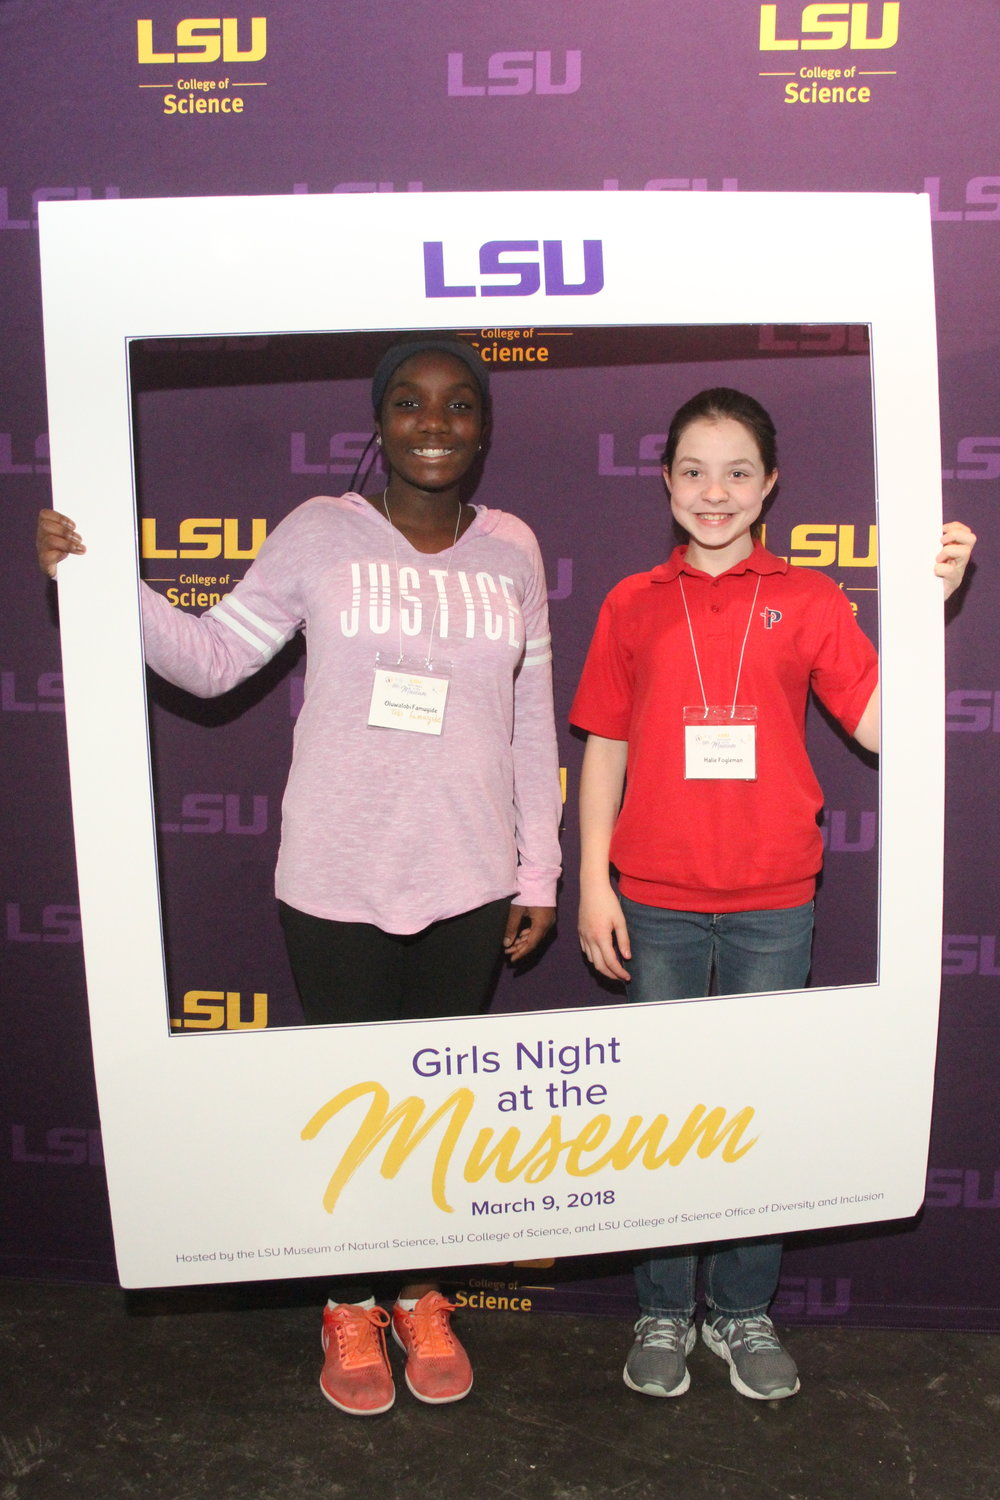 Here's Tobi with her good friend Hailie. They are all smiles at the Girls Night at the Museum photo booth.